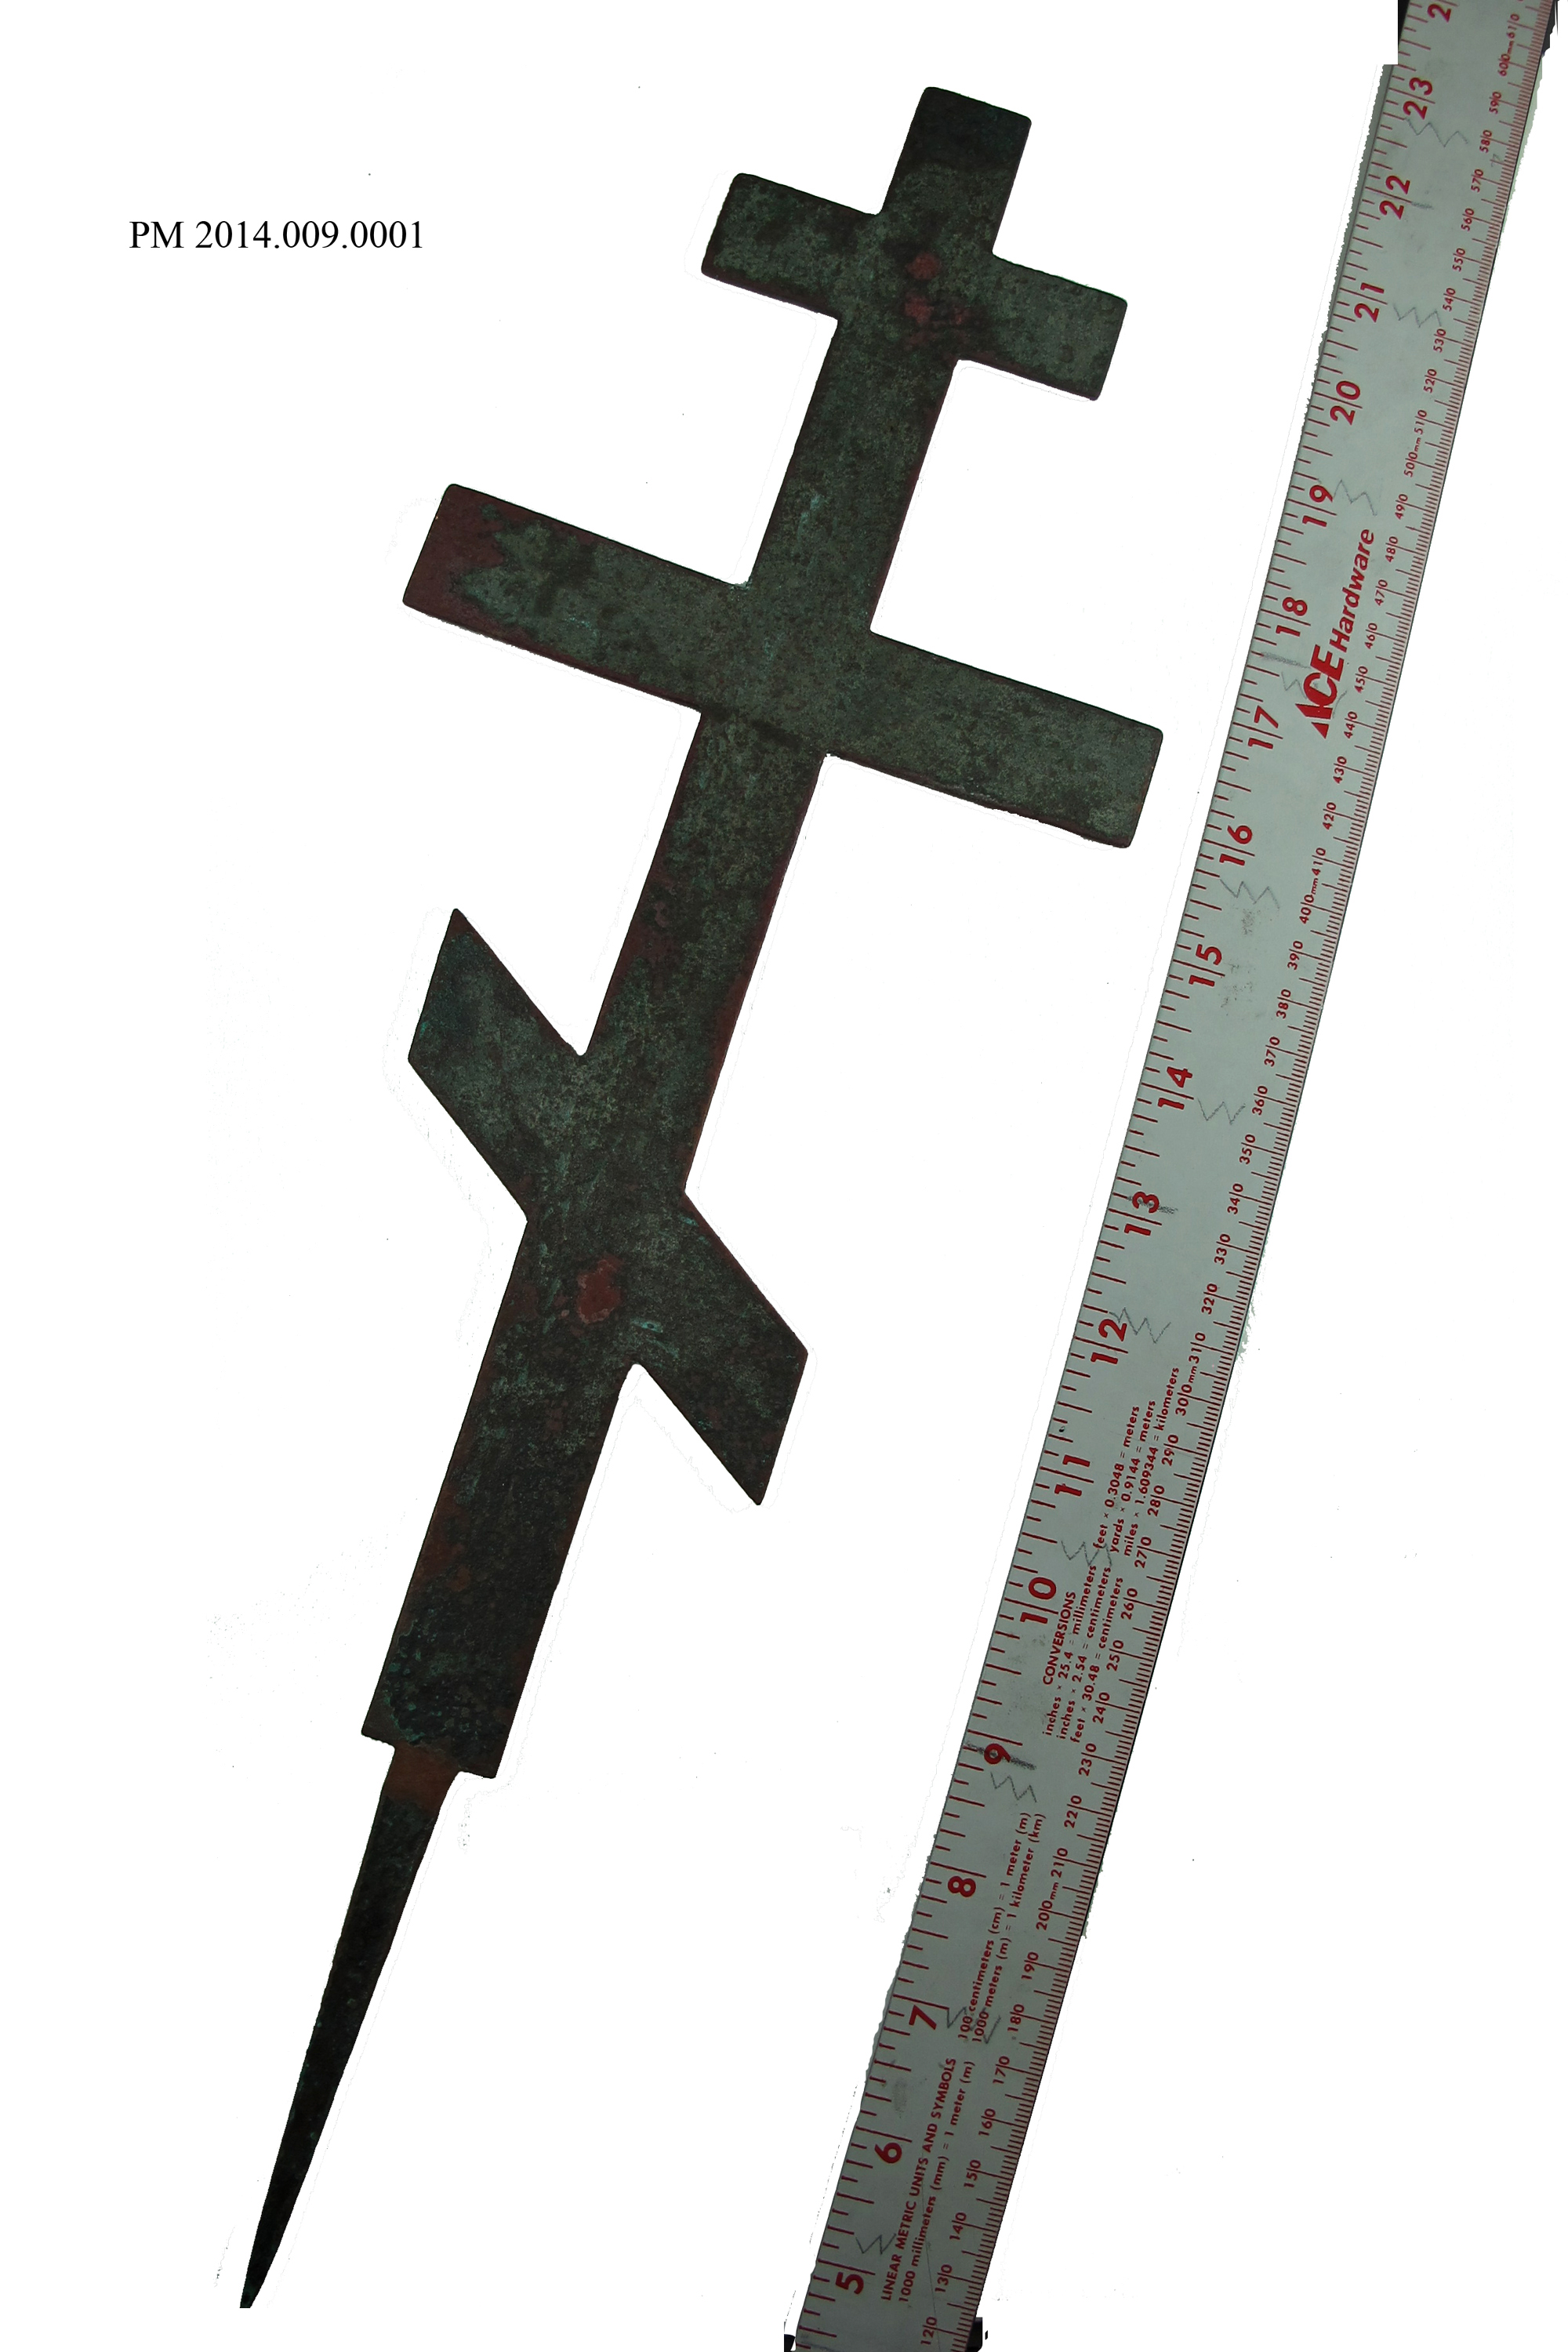 Photographing collection pieces nanwalek history russian orthodox cross pm 2014 009 0001 buycottarizona Image collections